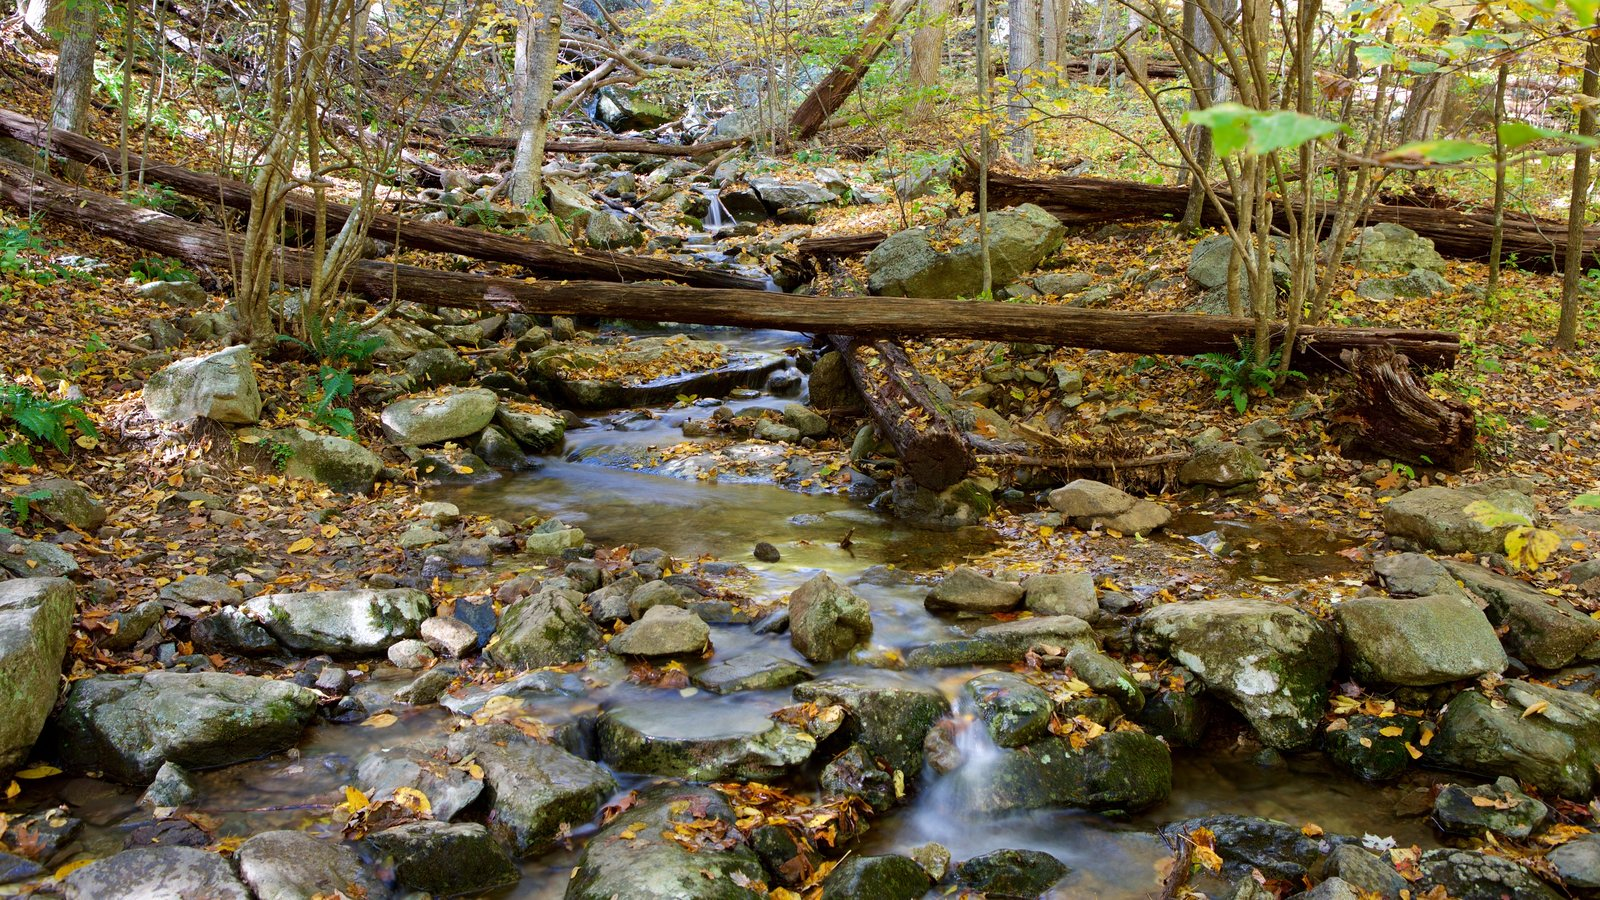 Shenandoah National Park which includes a river or creek and forest scenes